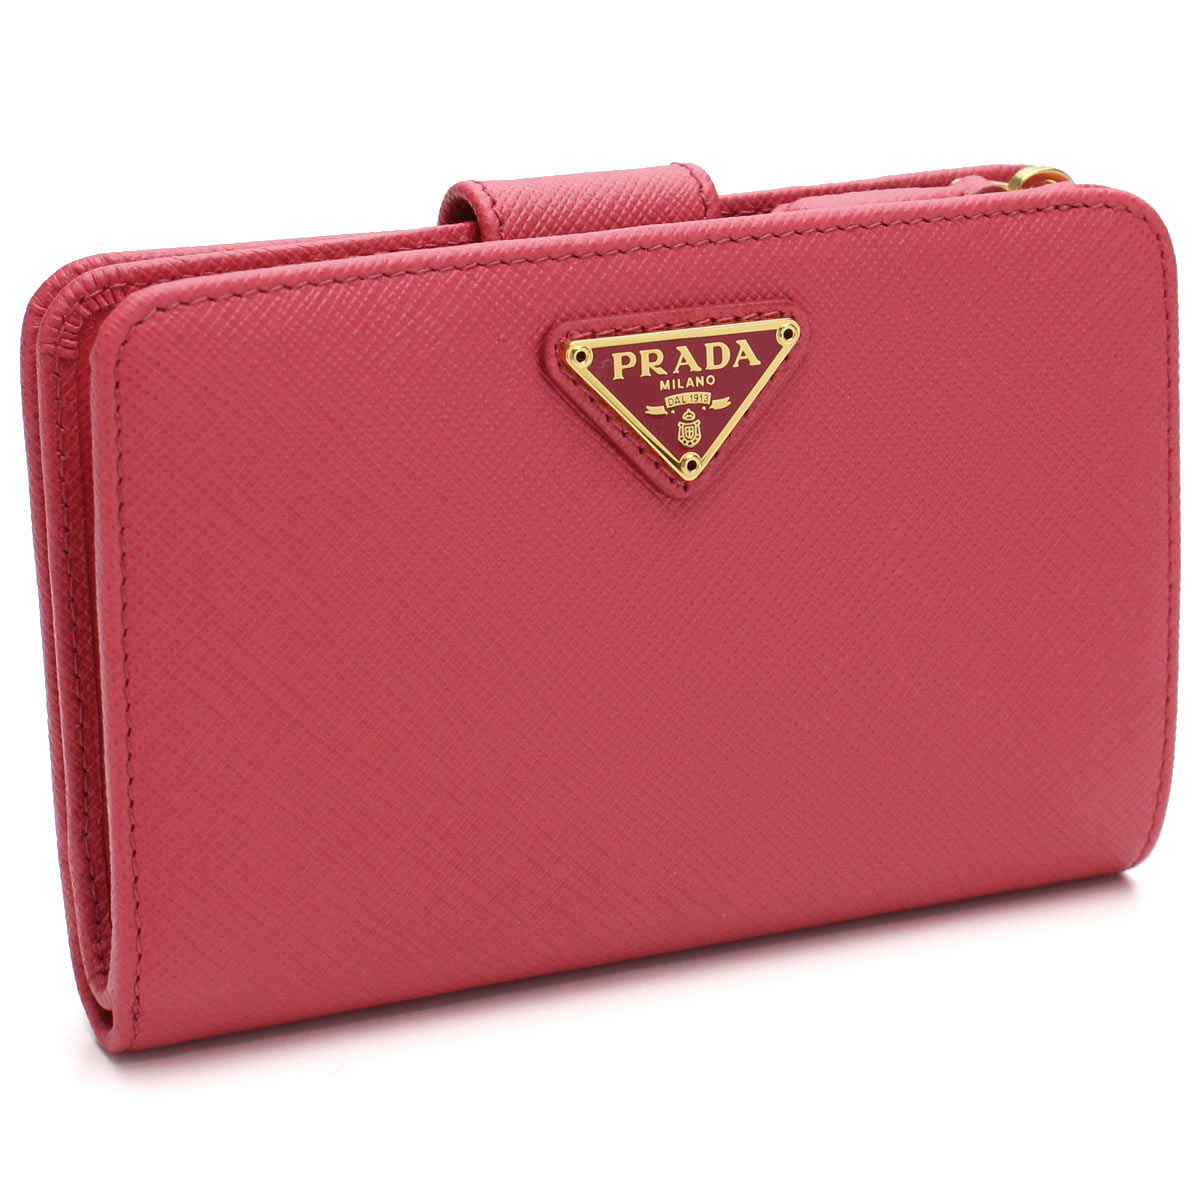 4995940e483 Bighit The total brand wholesale  1ML225 QHH F0505 PEONIA pink system with  the Prada (PRADA) サフィアーノトライアングル two fold wallet coin purse